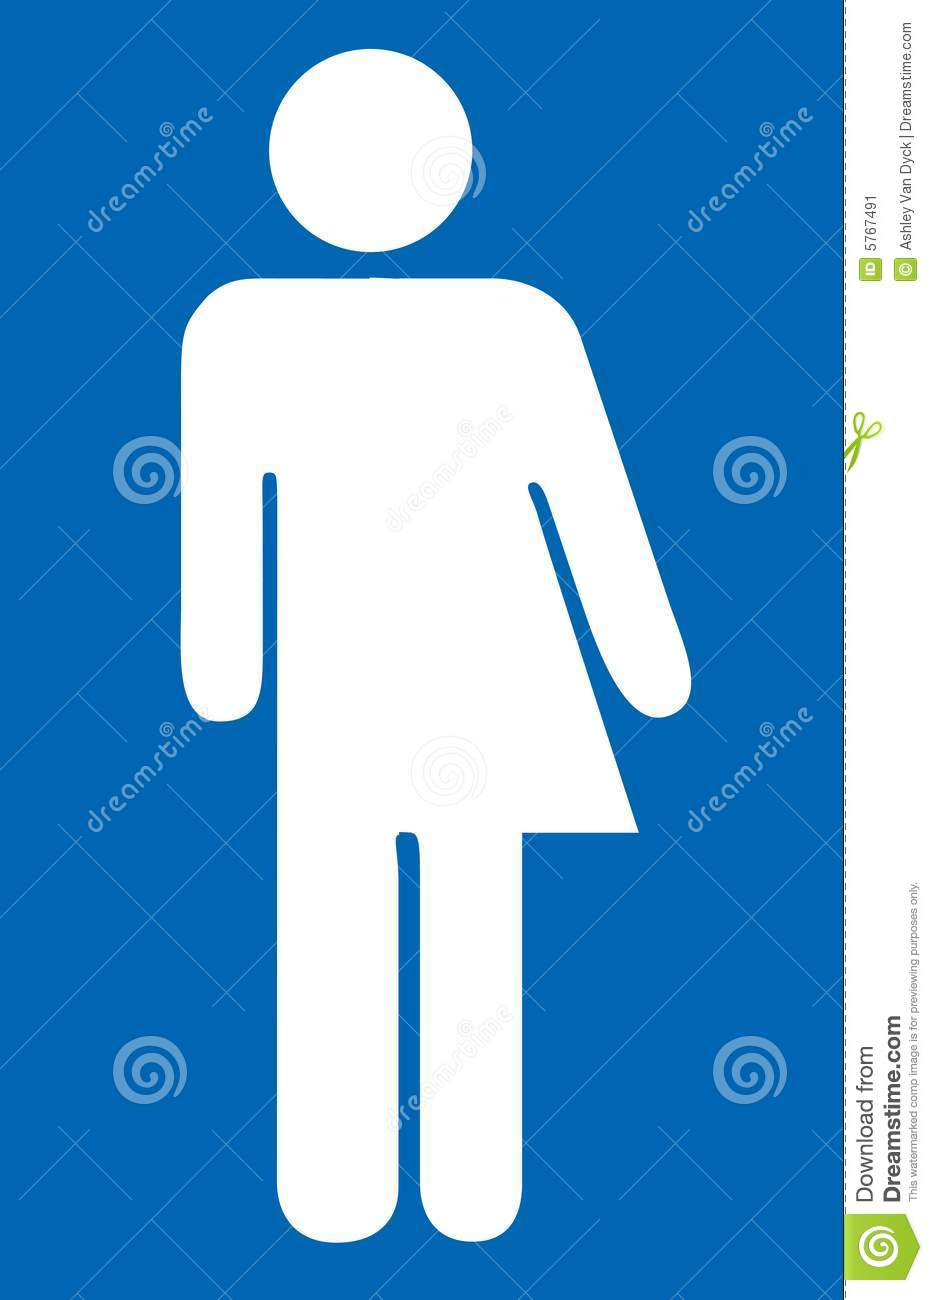 image Woman in the bathroom shows her body for the community Part 7